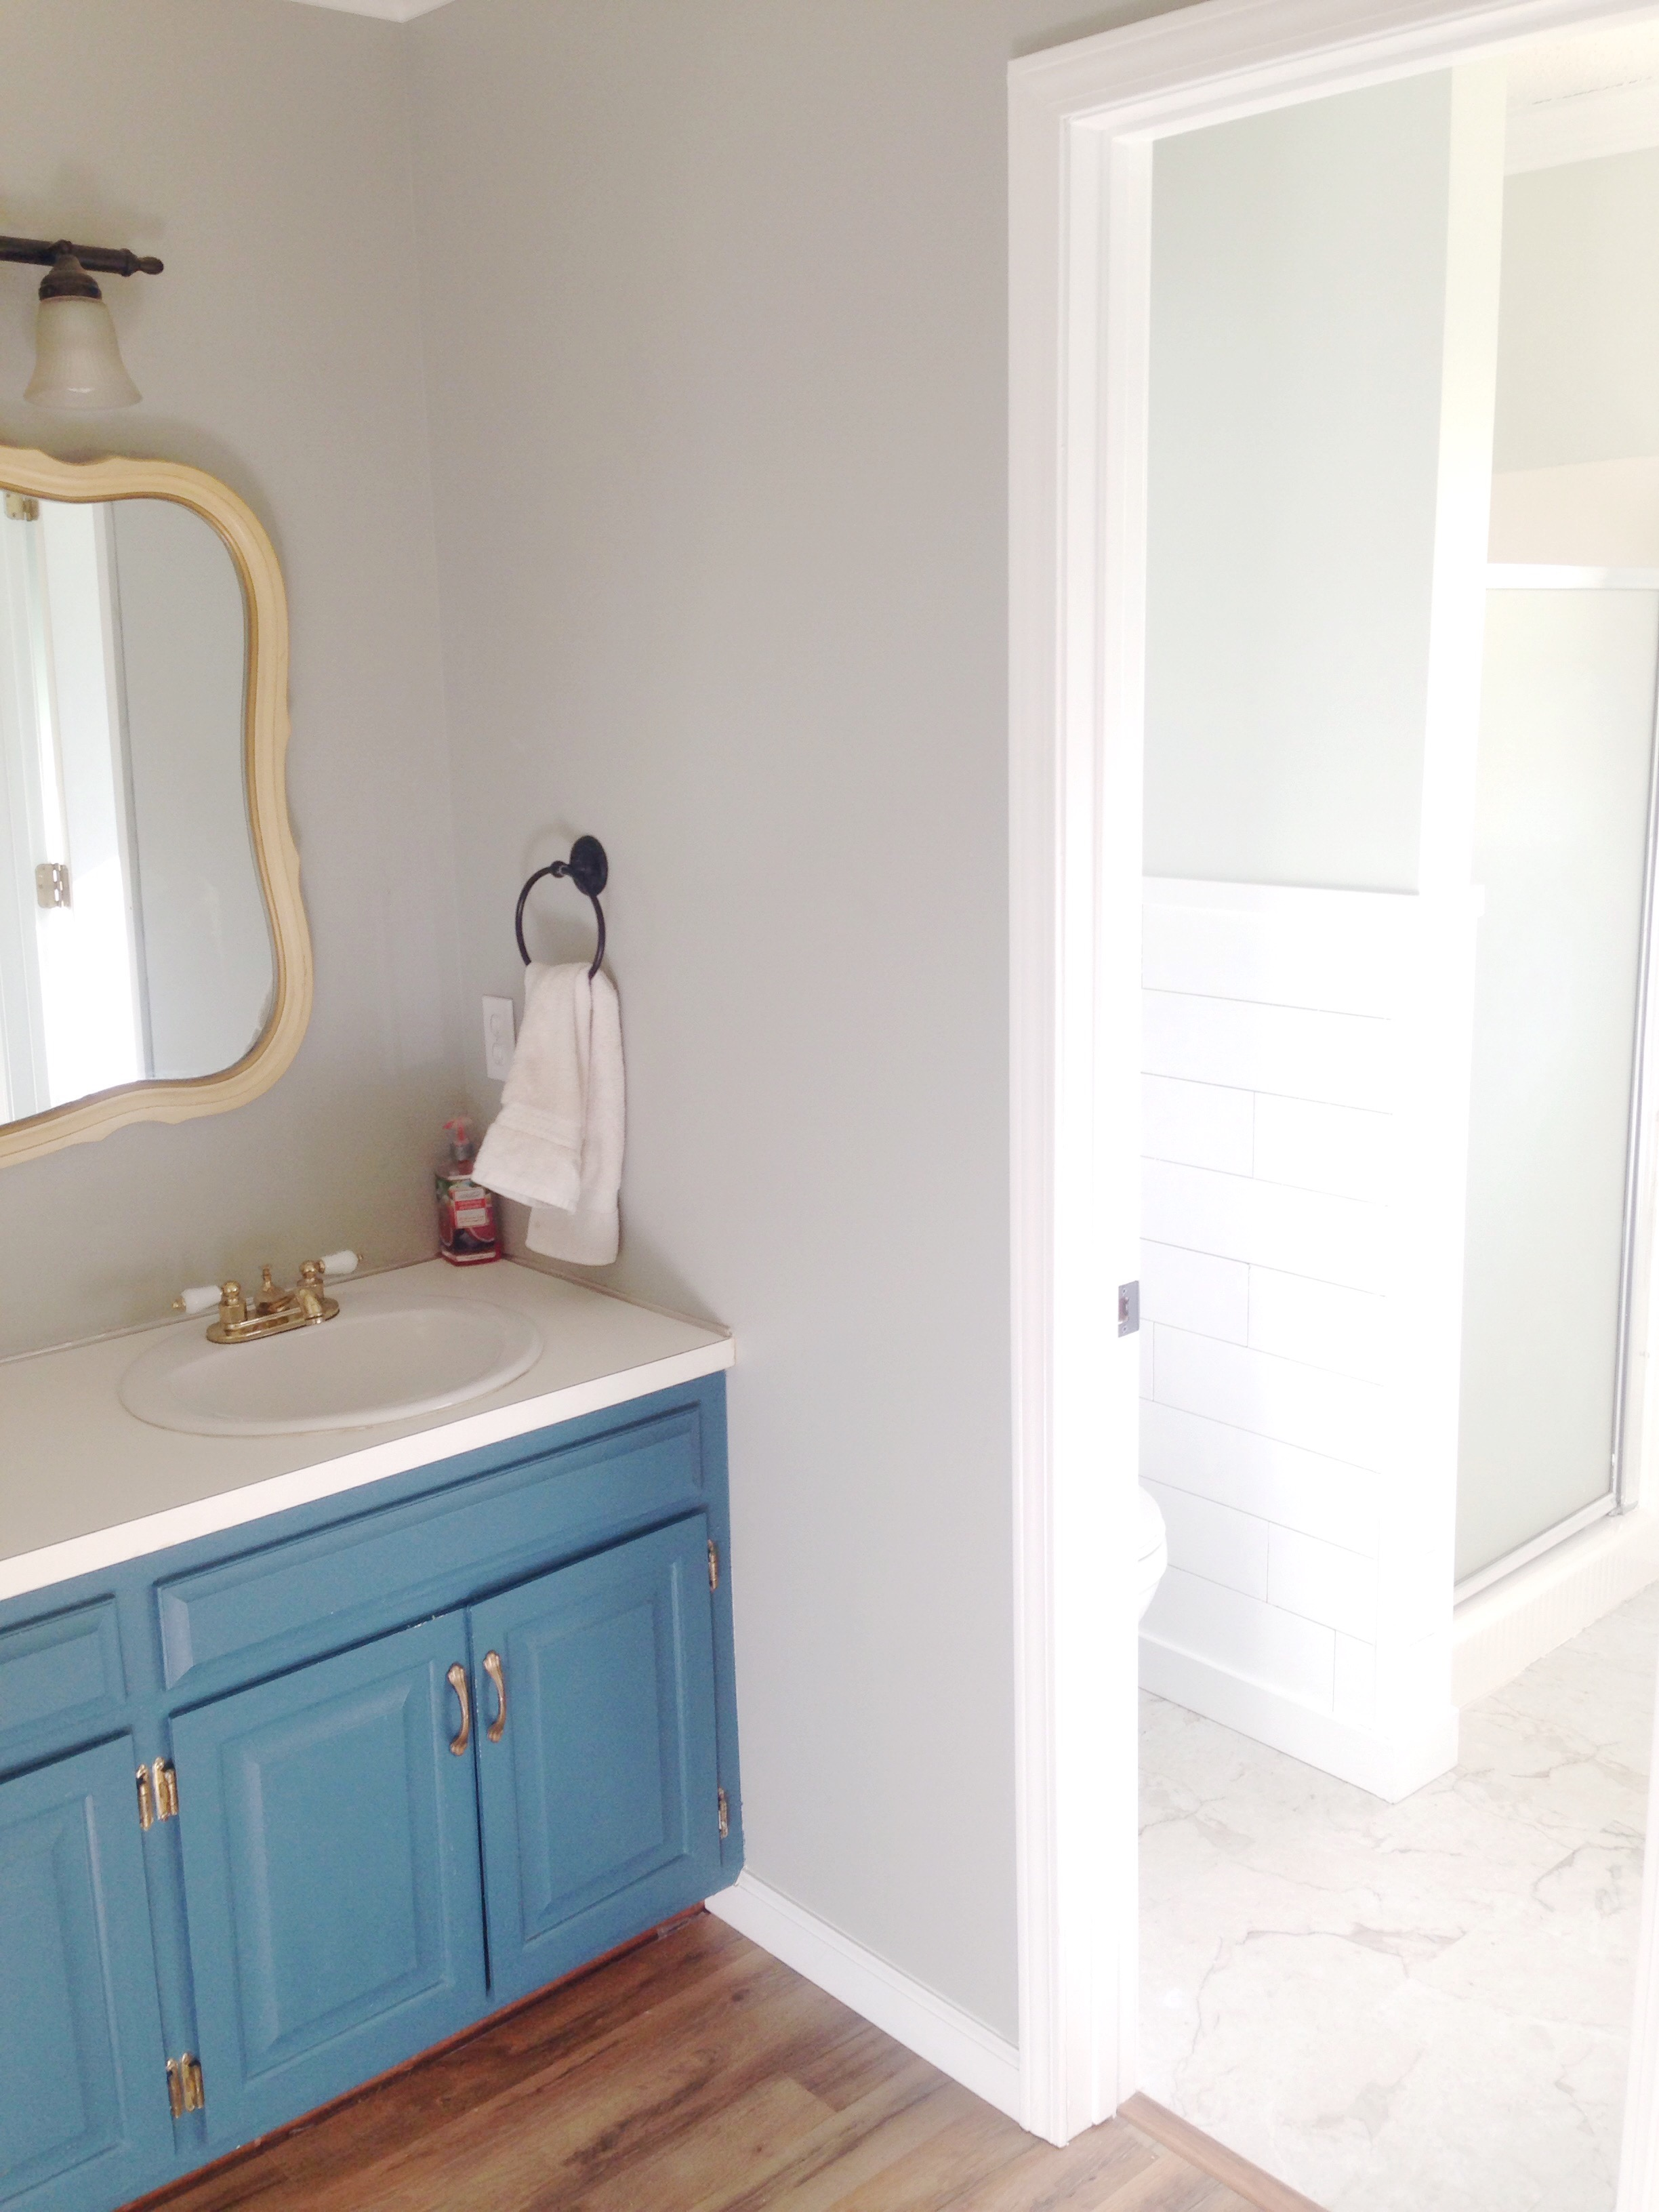 We Sold Our House in One Day: Master Bathroom Updates | All Things ...